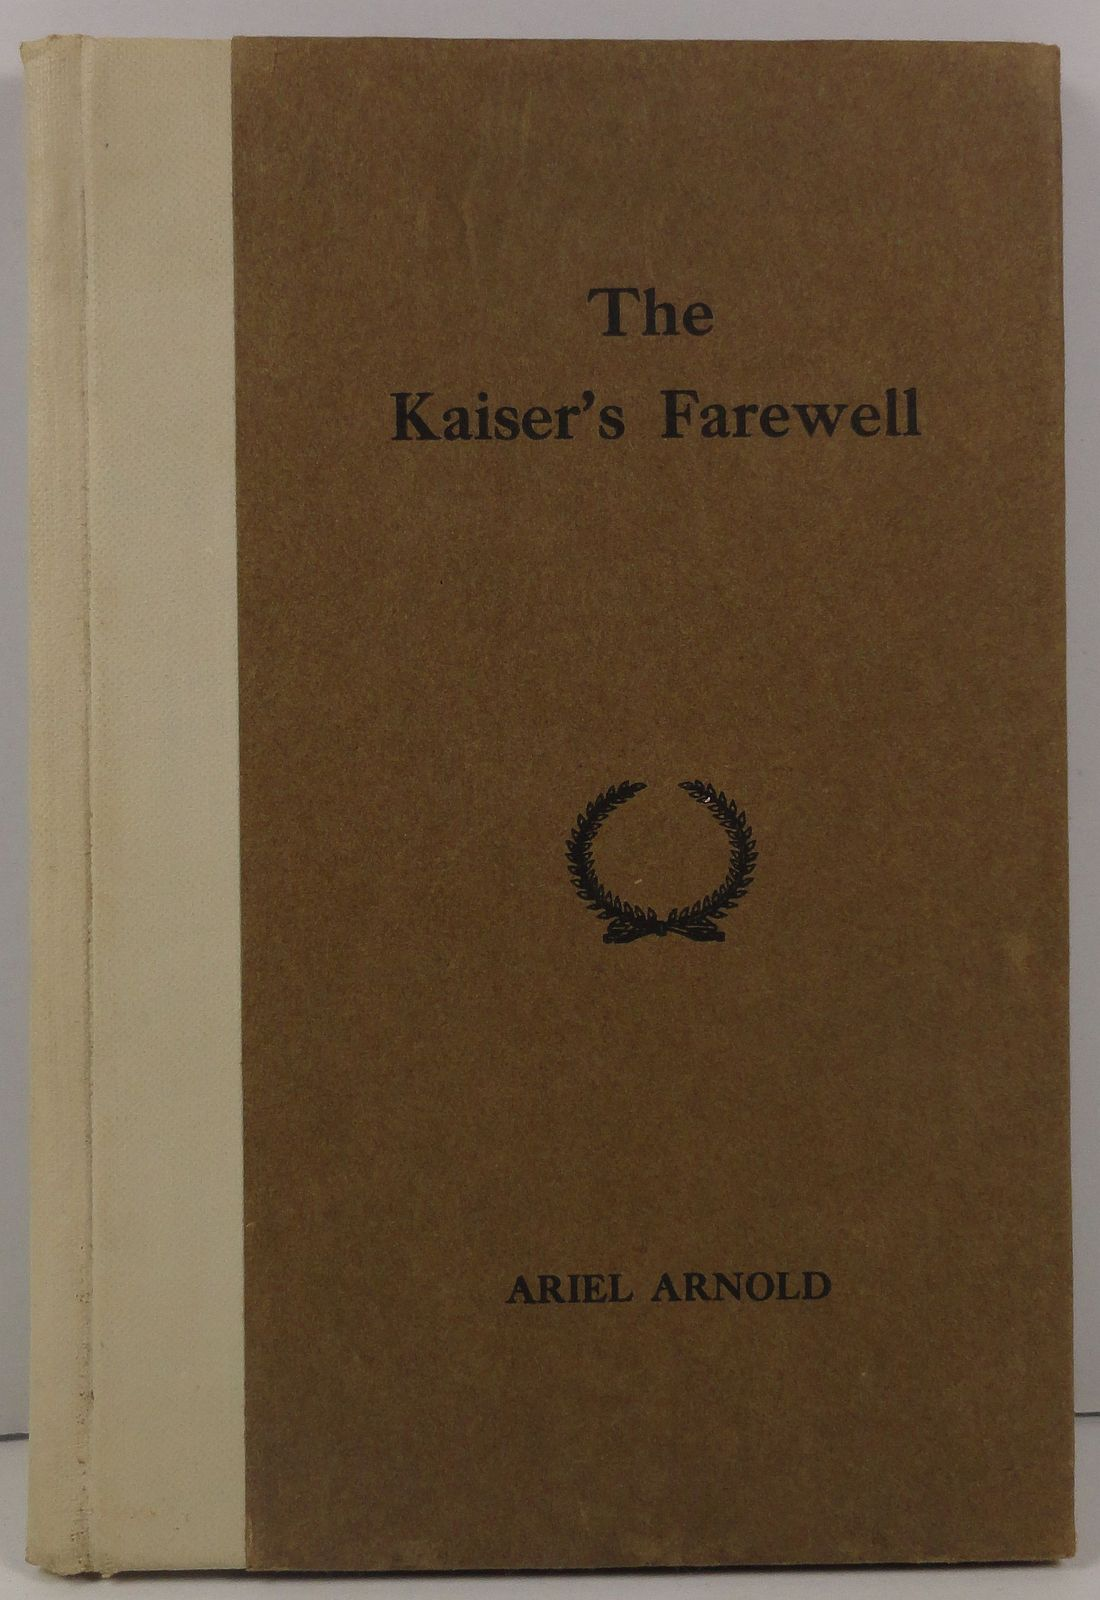 The Kaiser's Farewell by Ariel Arnold 1916 Private Printing